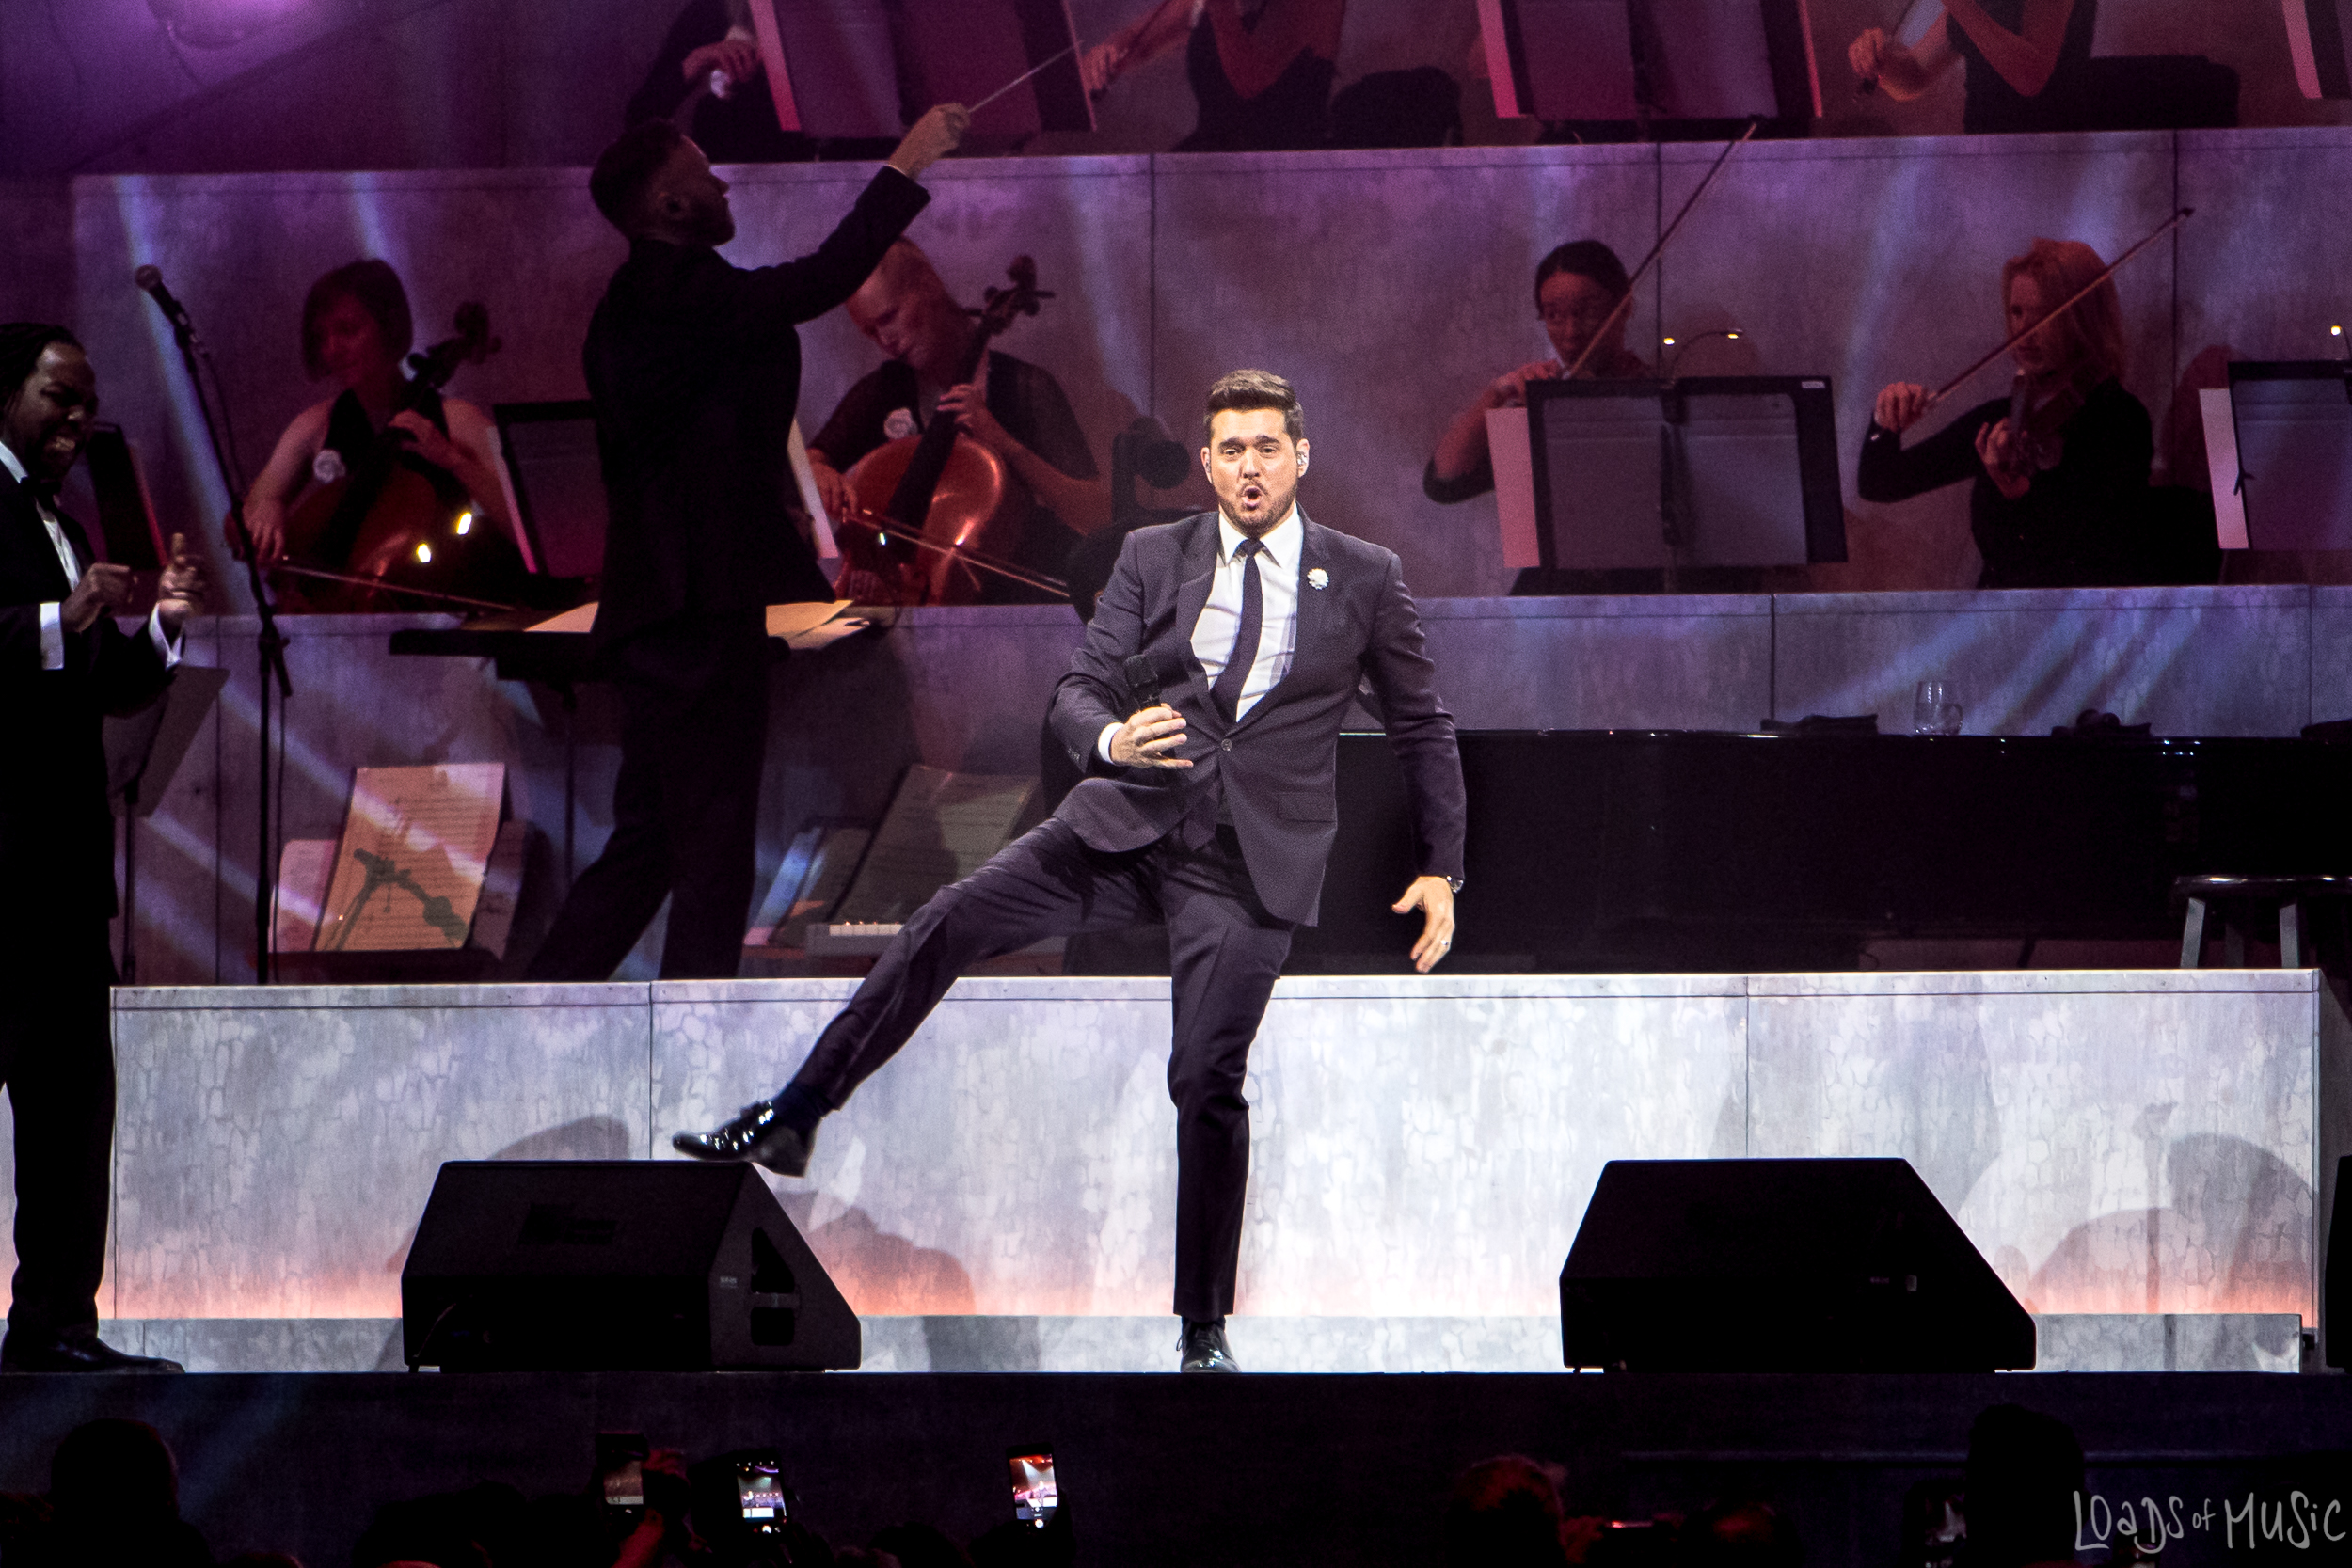 Michael_Buble_Hallenstadion_MB_11